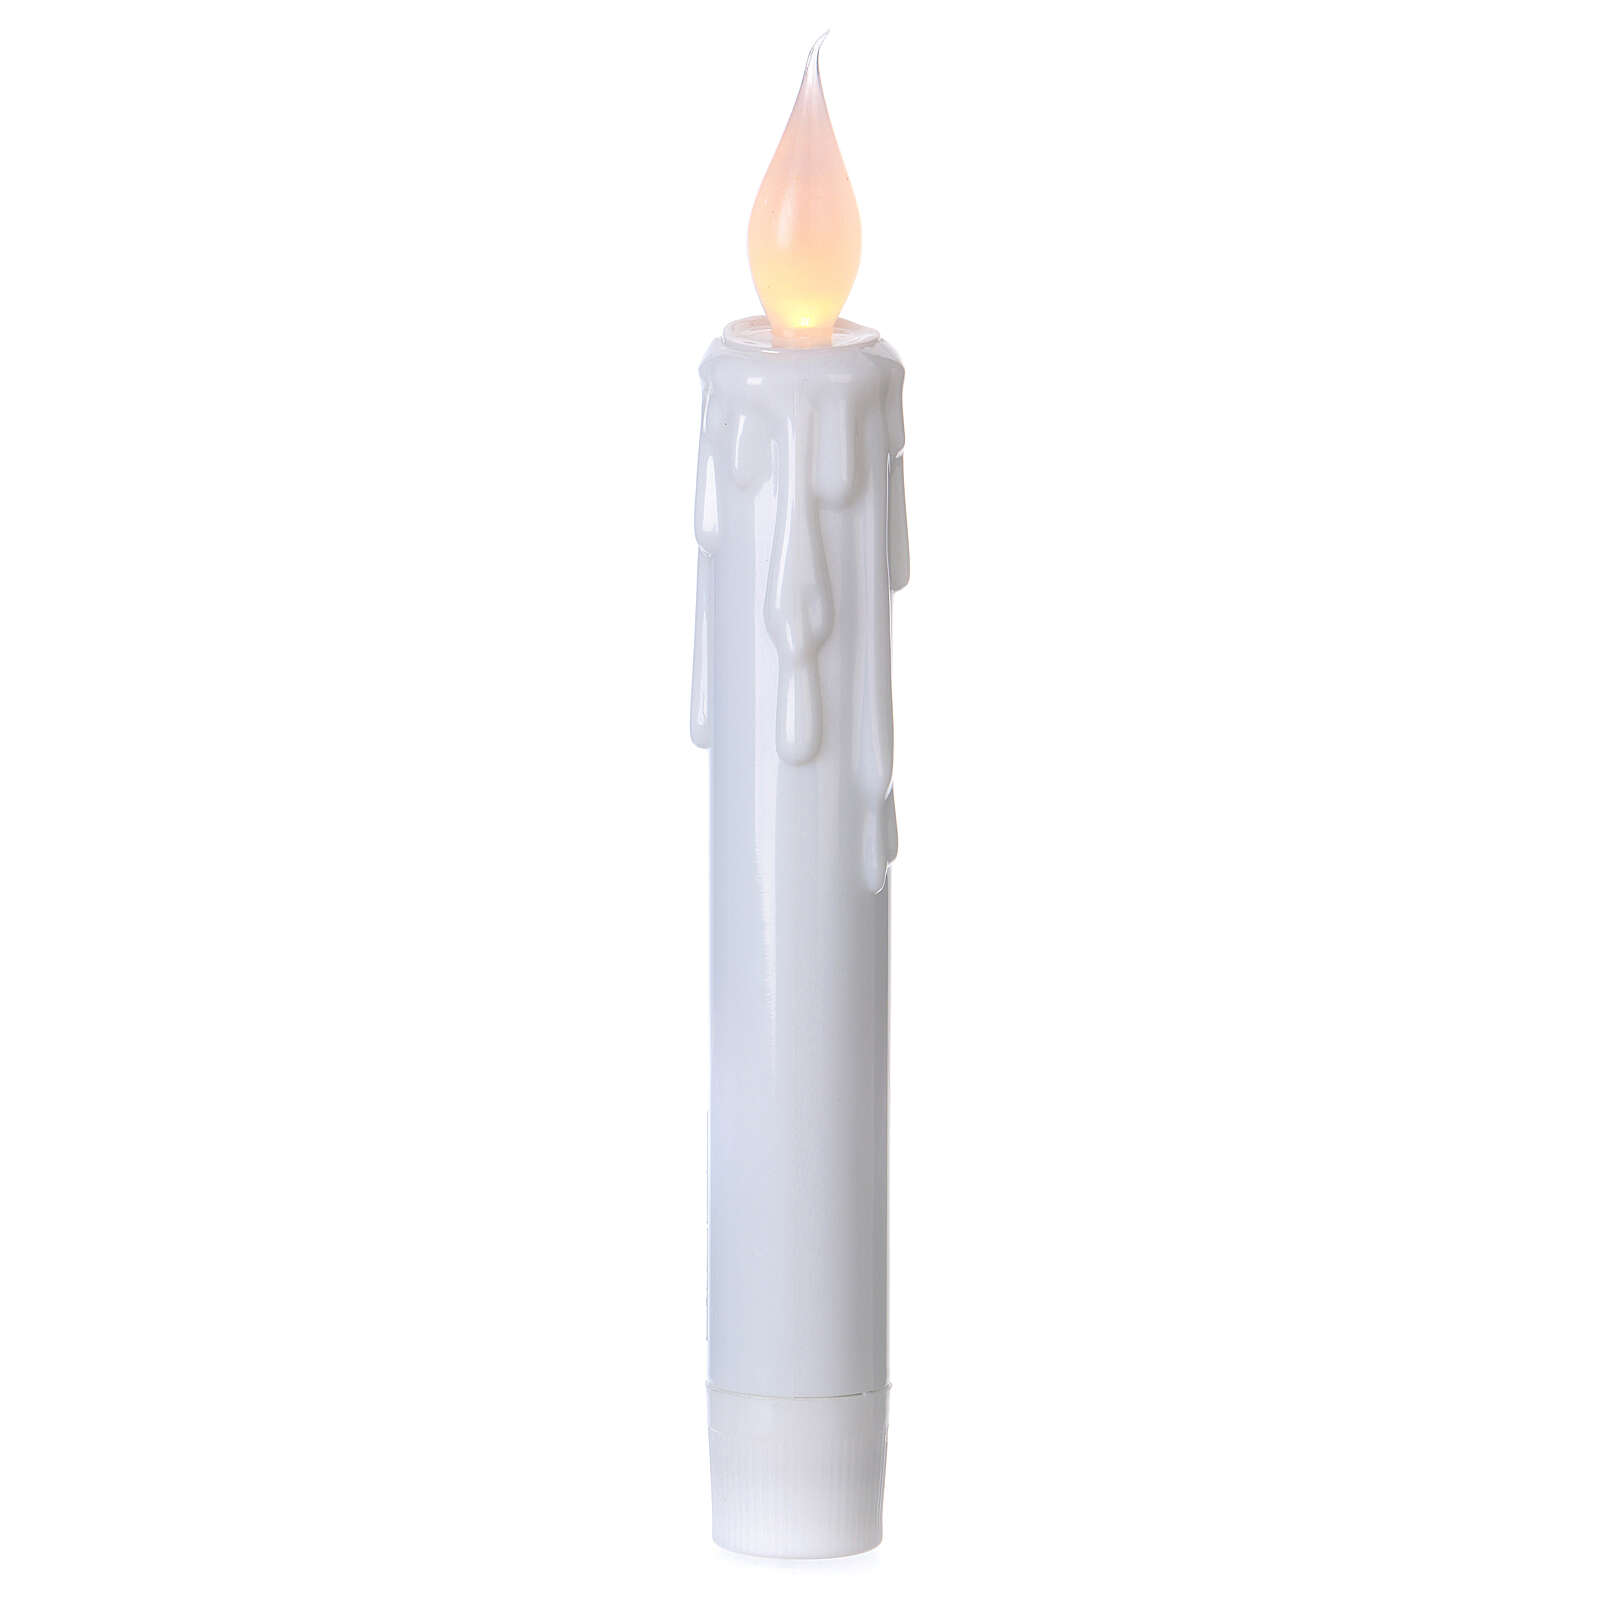 Electric candles with flame effect, battery powered 3